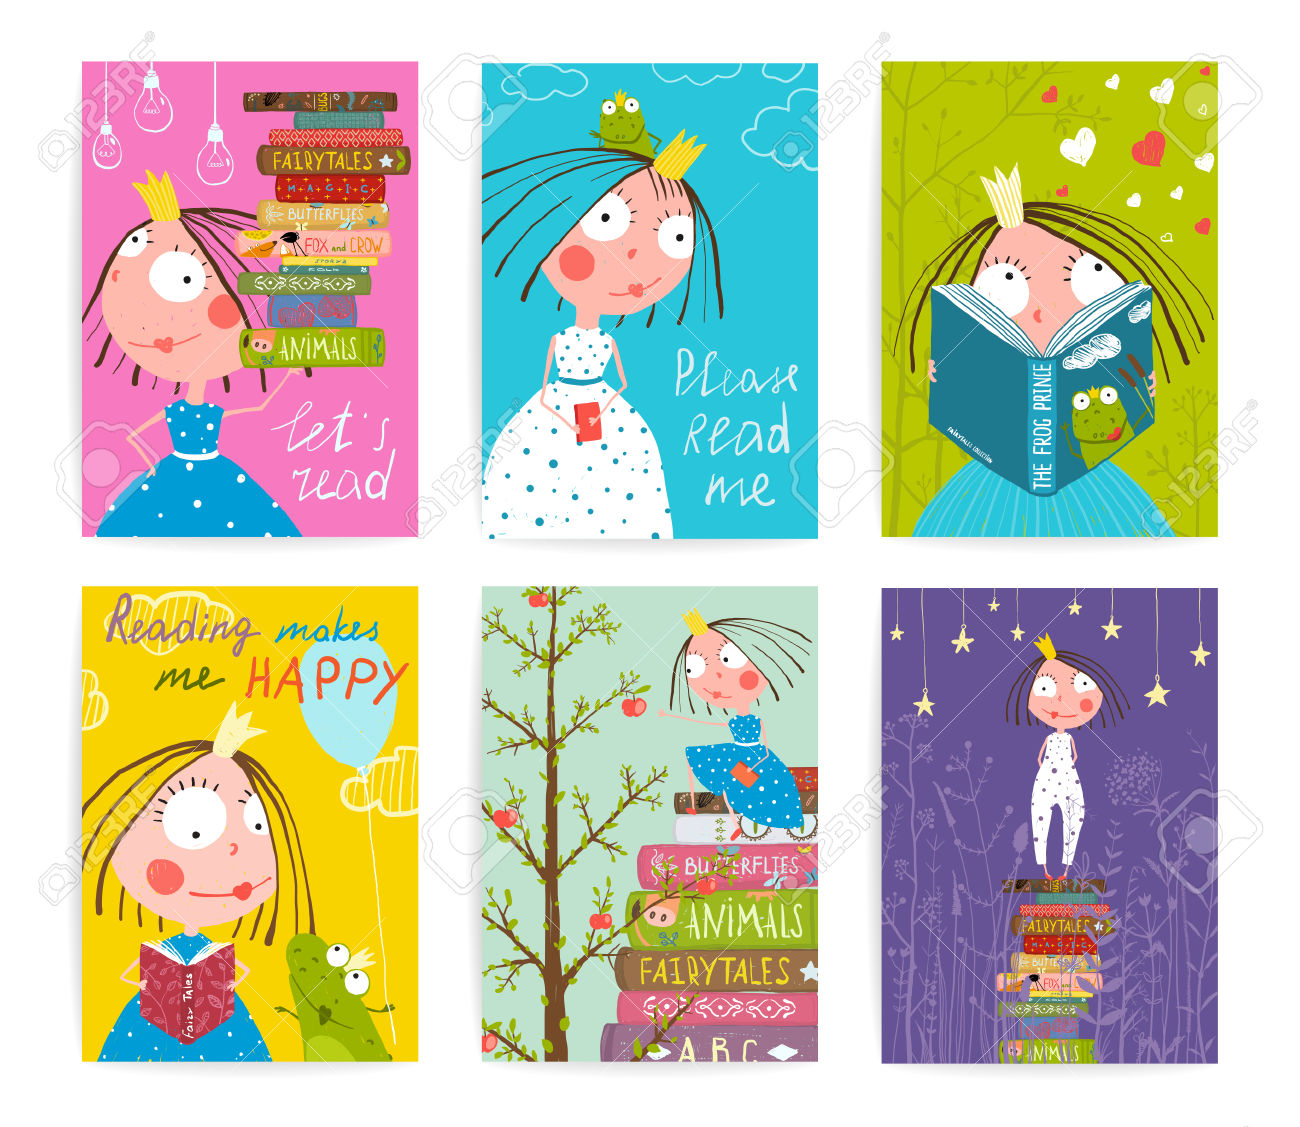 Cute Little Princess Kids Reading Fairy Tale Books Library Poster.